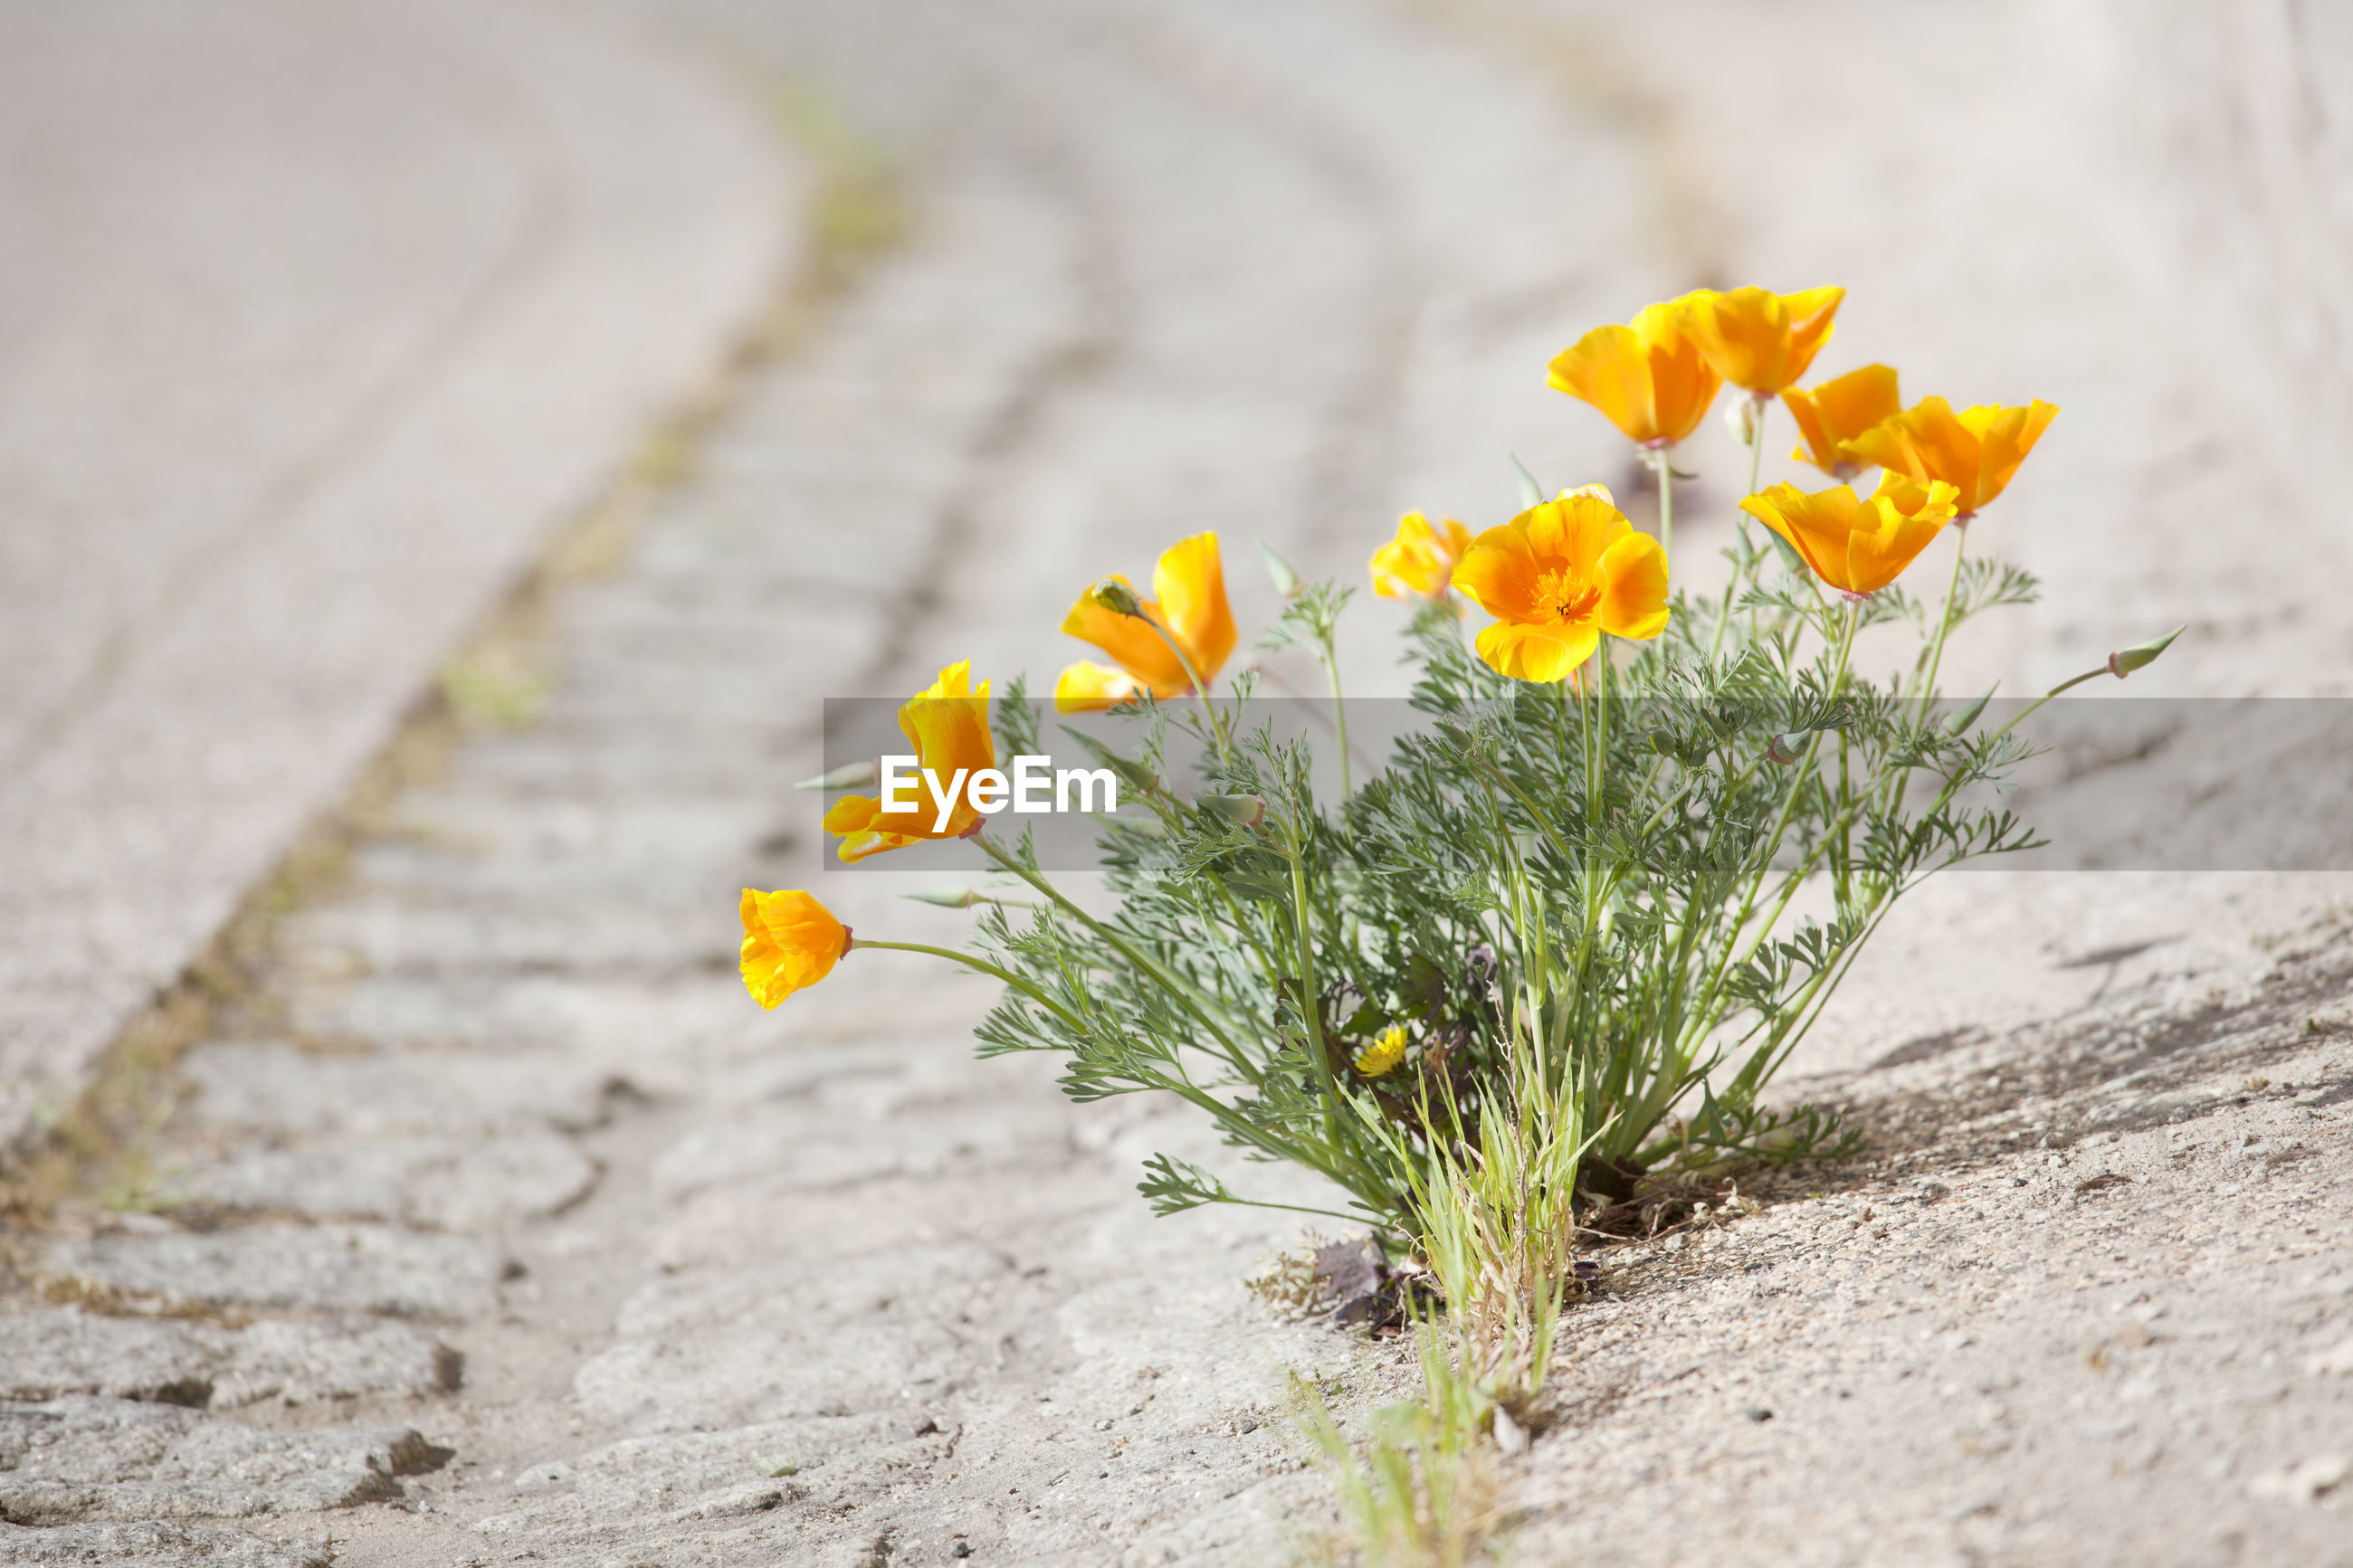 CLOSE-UP OF YELLOW FLOWERS ON FOOTPATH